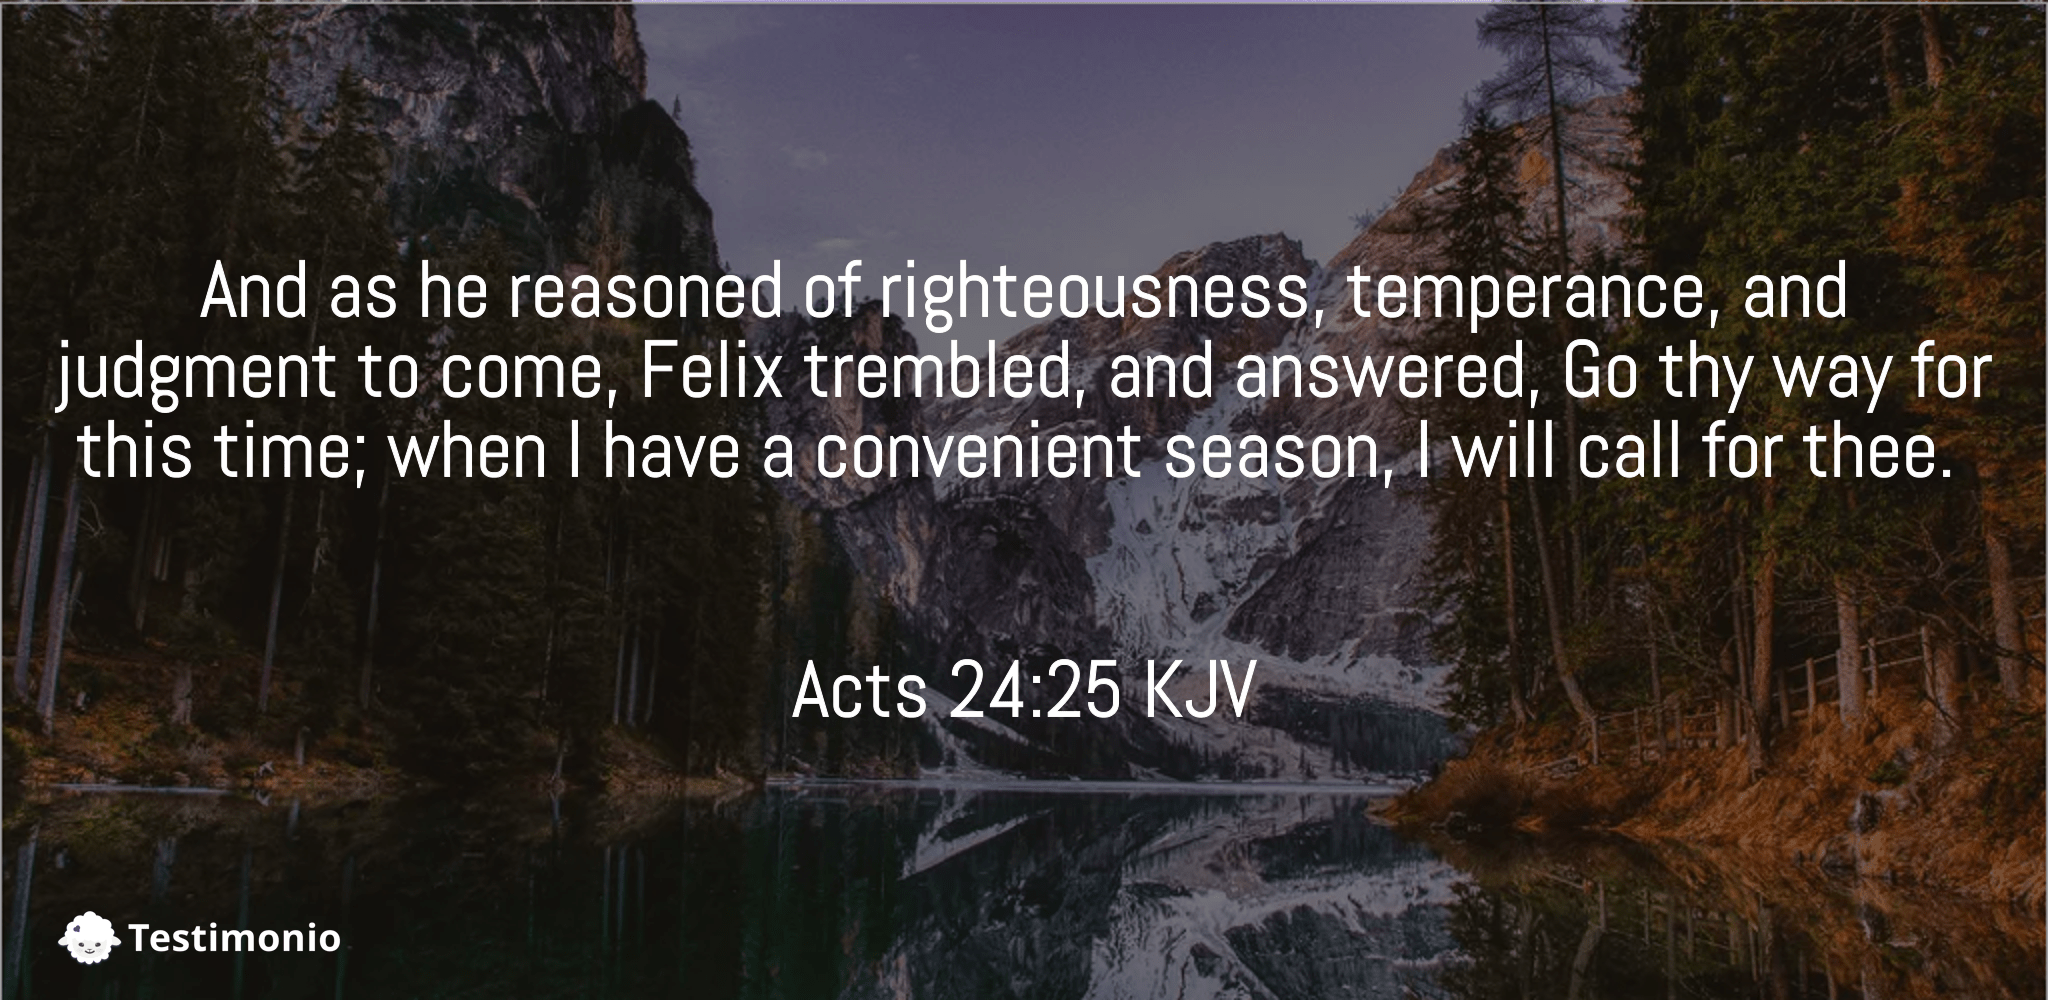 Acts 24:25